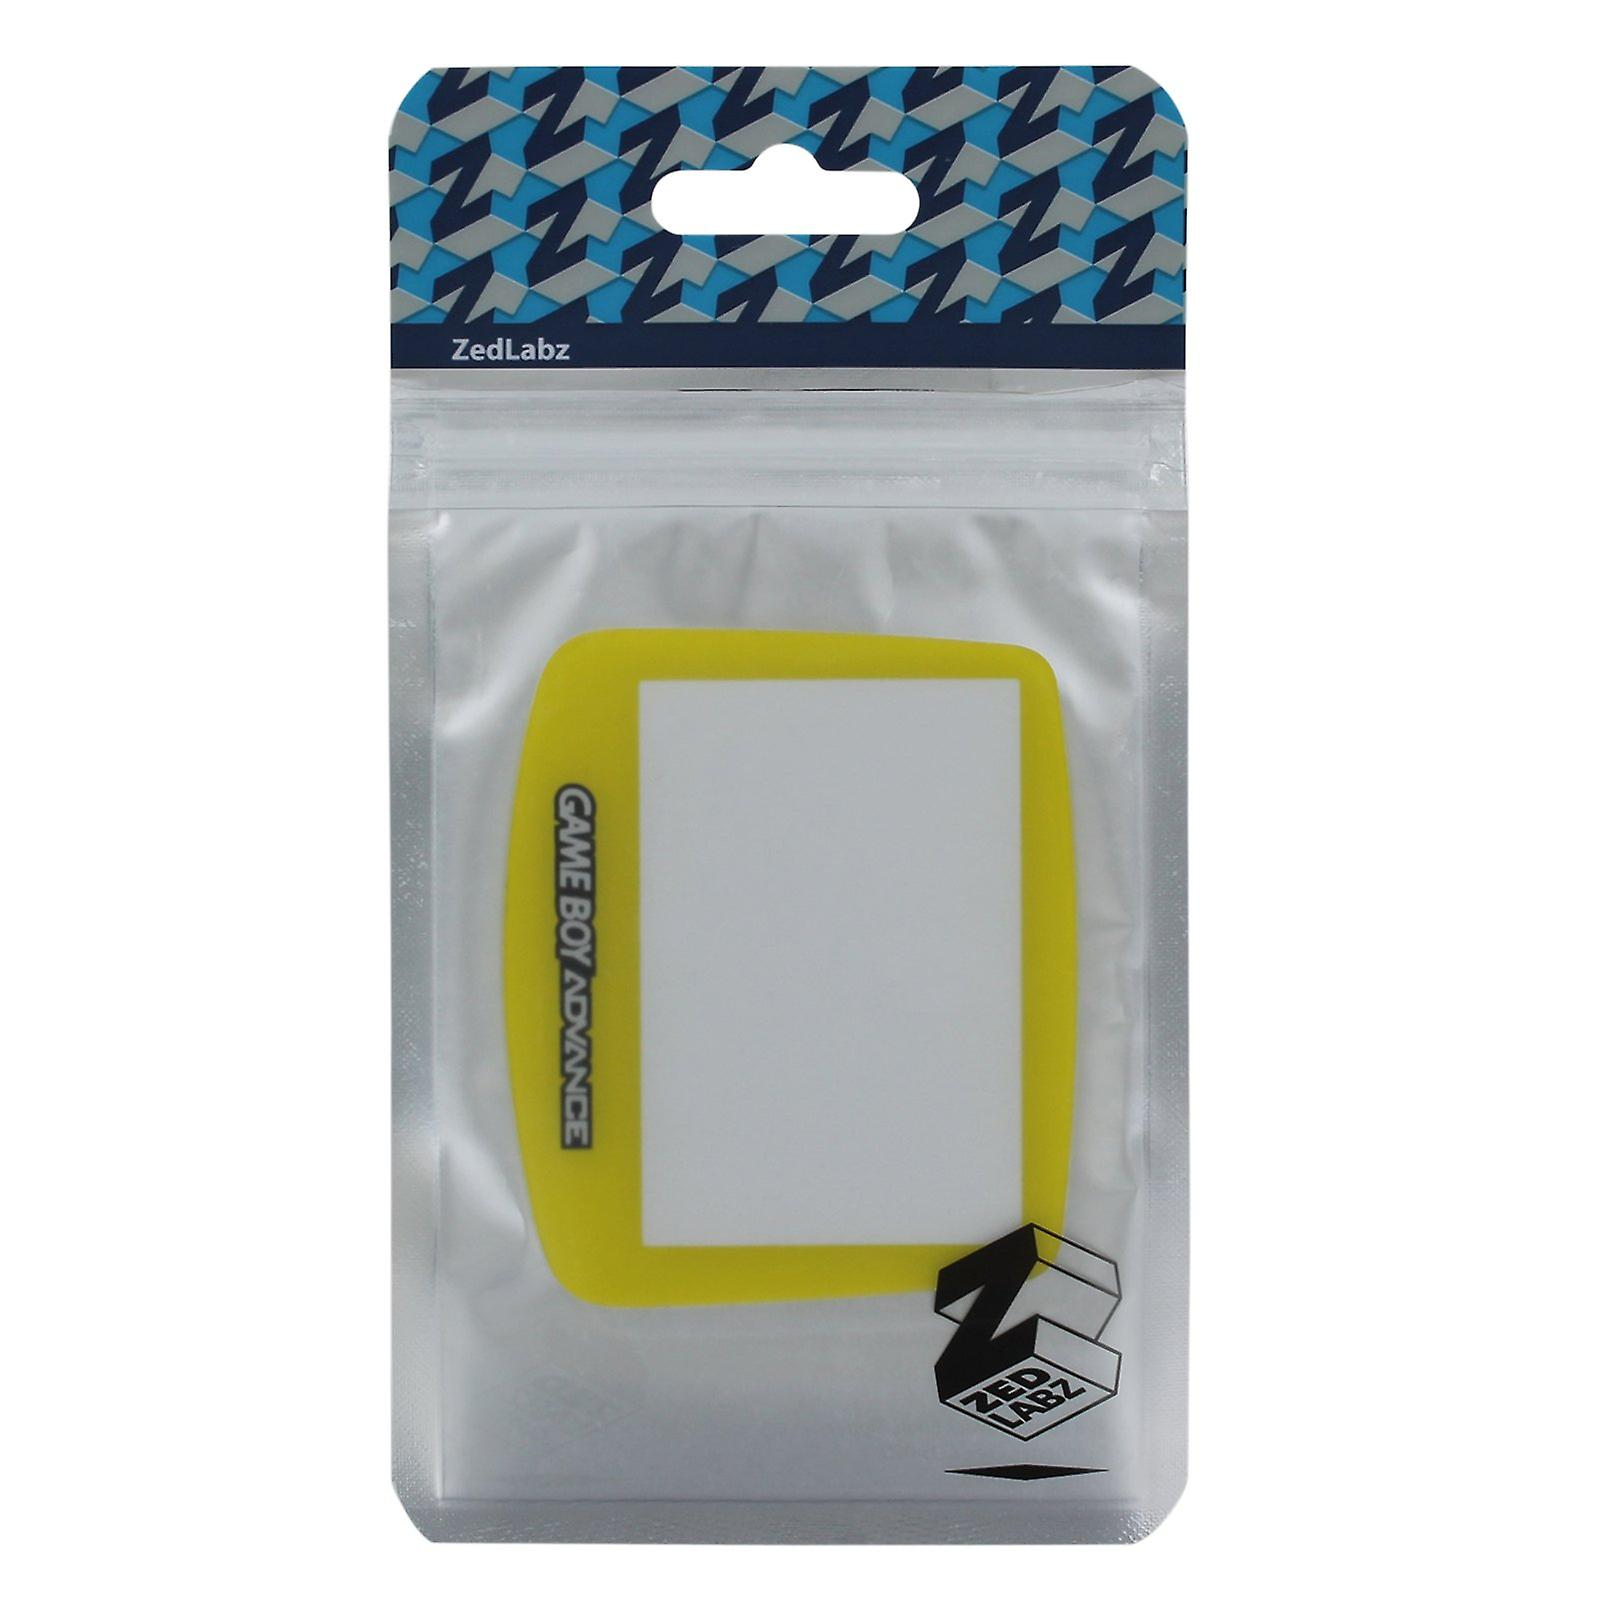 Replacement screen lens plastic cover for nintendo game boy advance - yellow